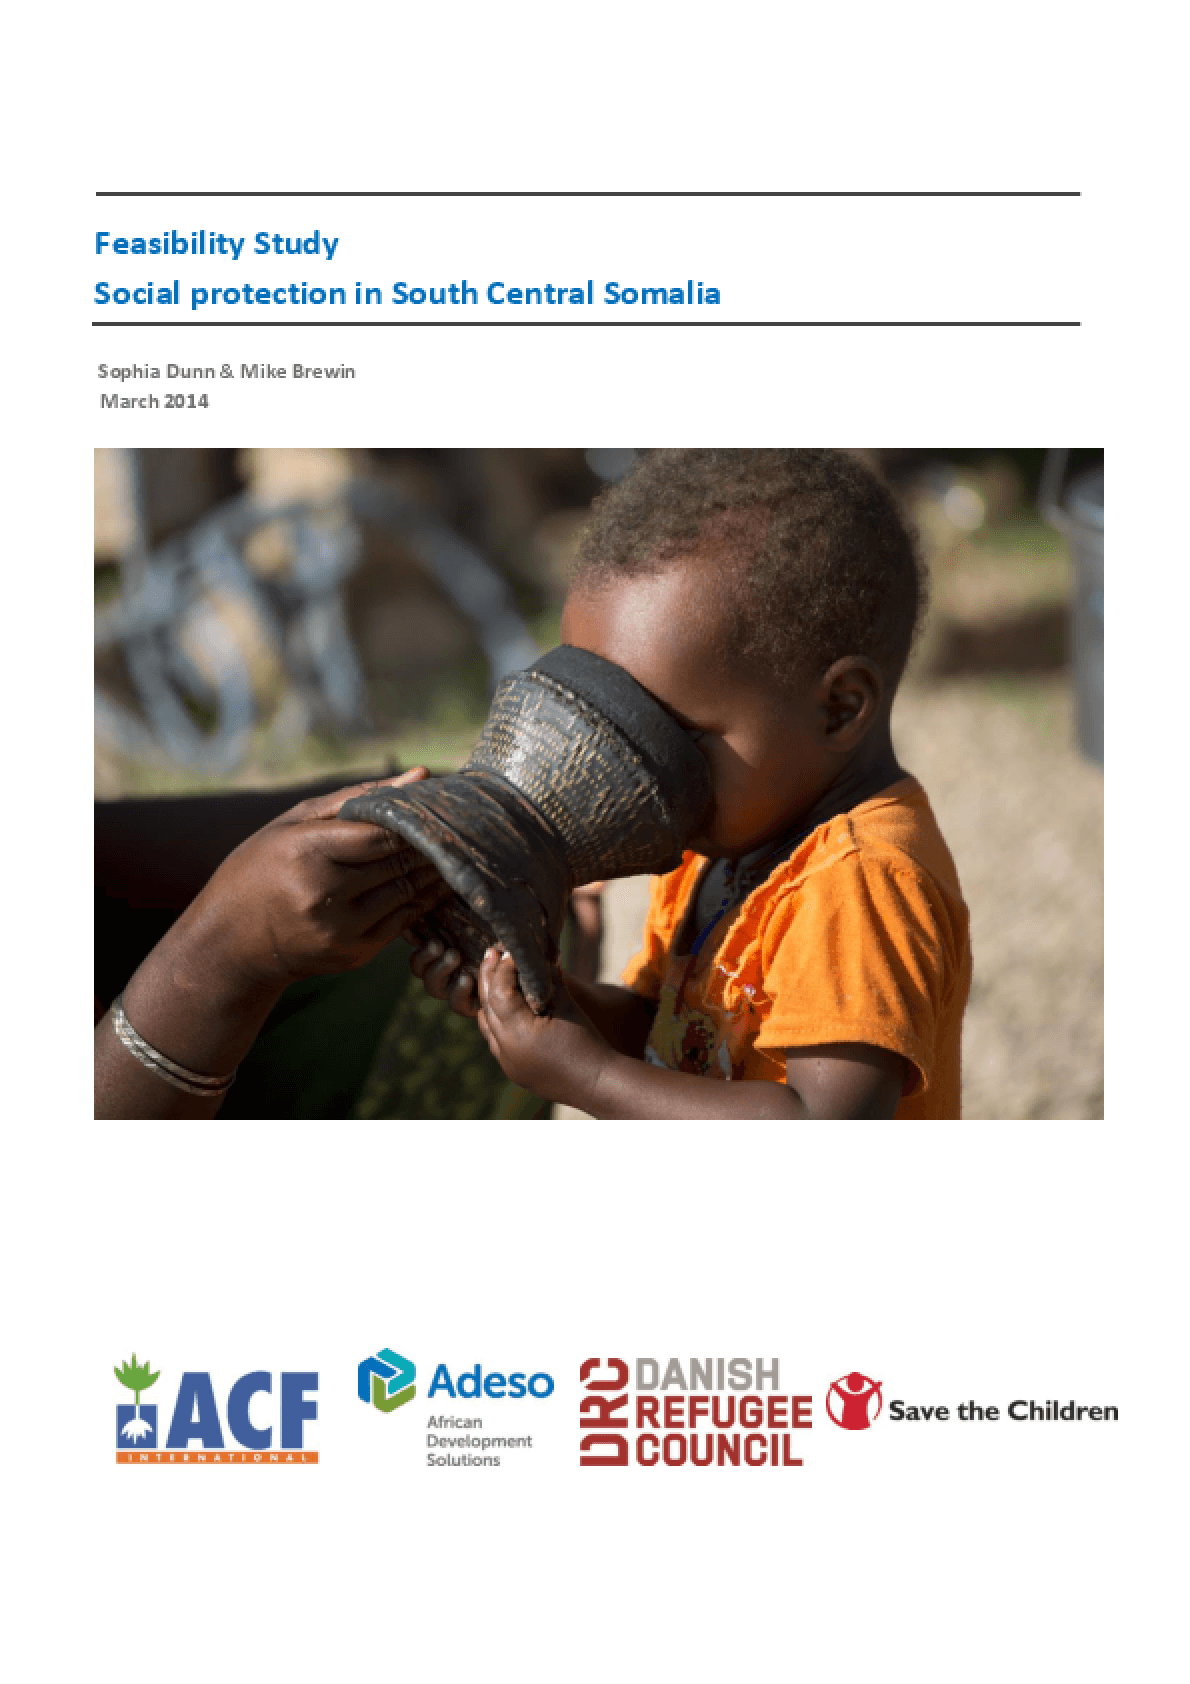 Feasibility Study: Social Protection in South Central Somalia